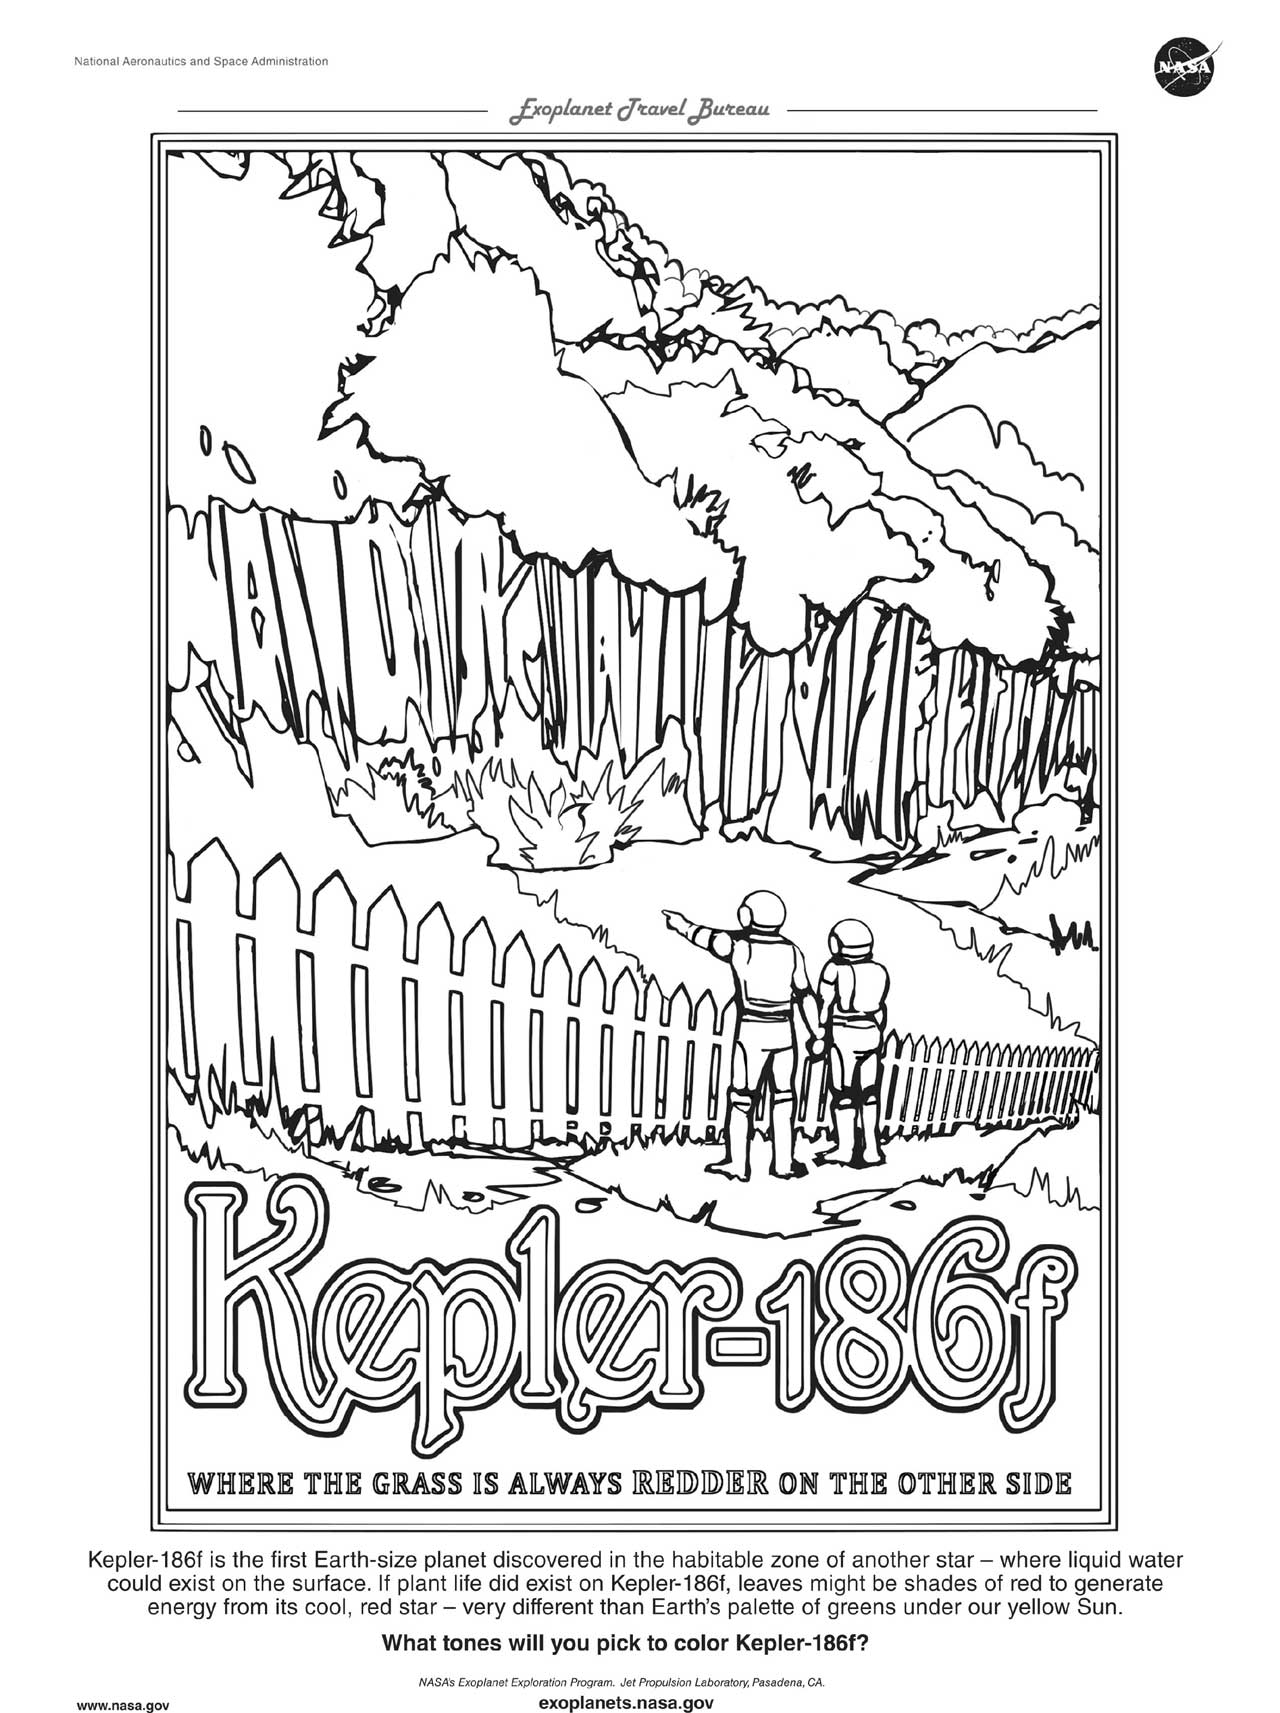 A downloadable version of a coloring page for the Kepler-16b exoplanet travel poster.